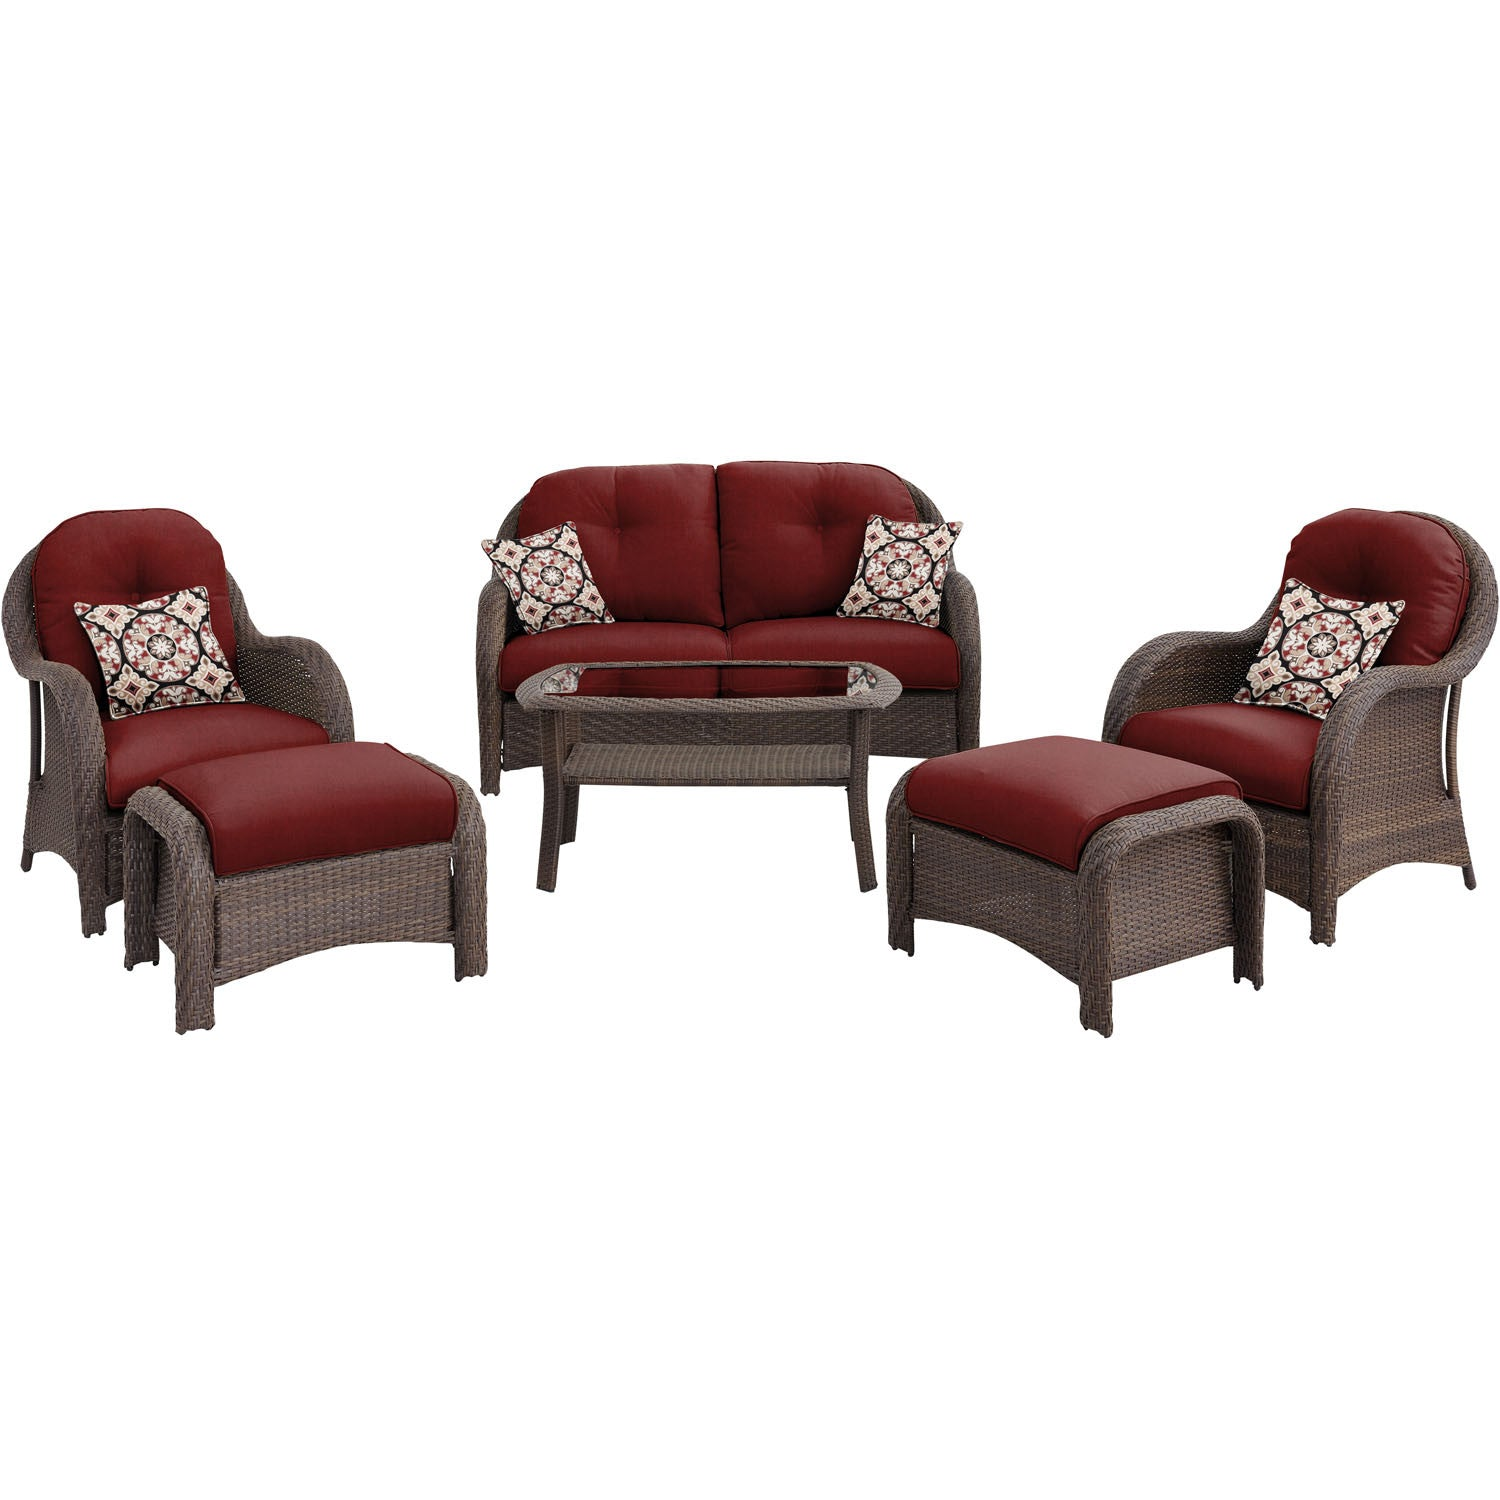 6pc Woven Deep Seating Set Loveseat 2 chairs 2 ottomans 1